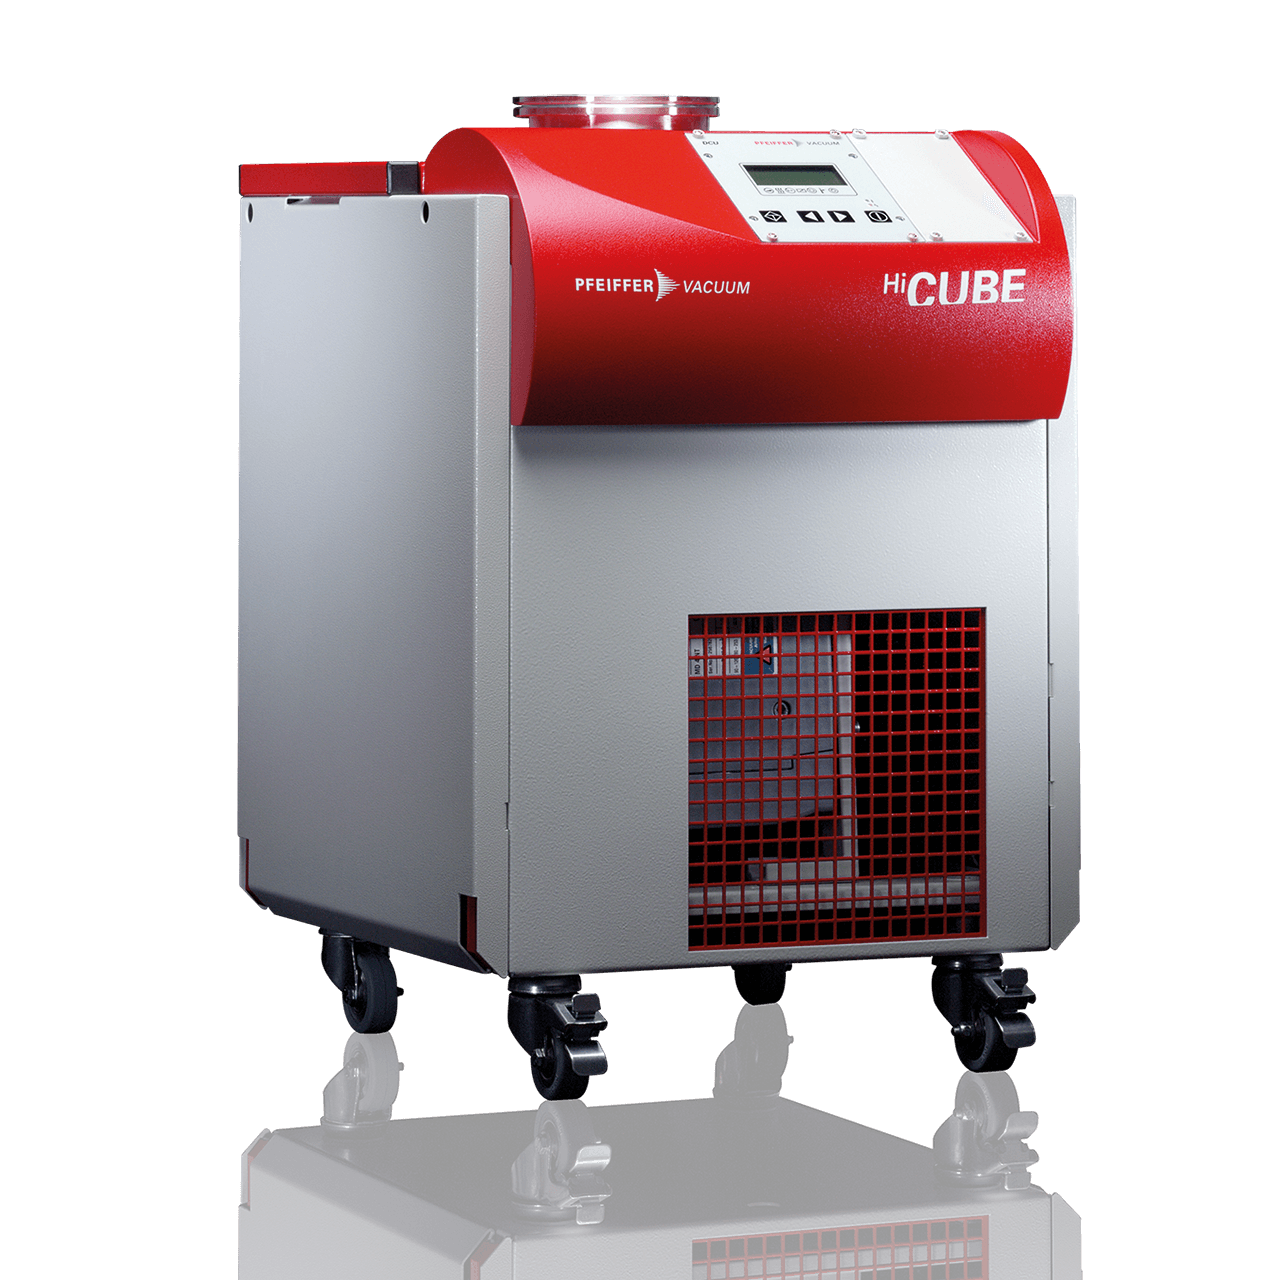 Turbo Pumping Stations HiCube - Pfeiffer Vacuum